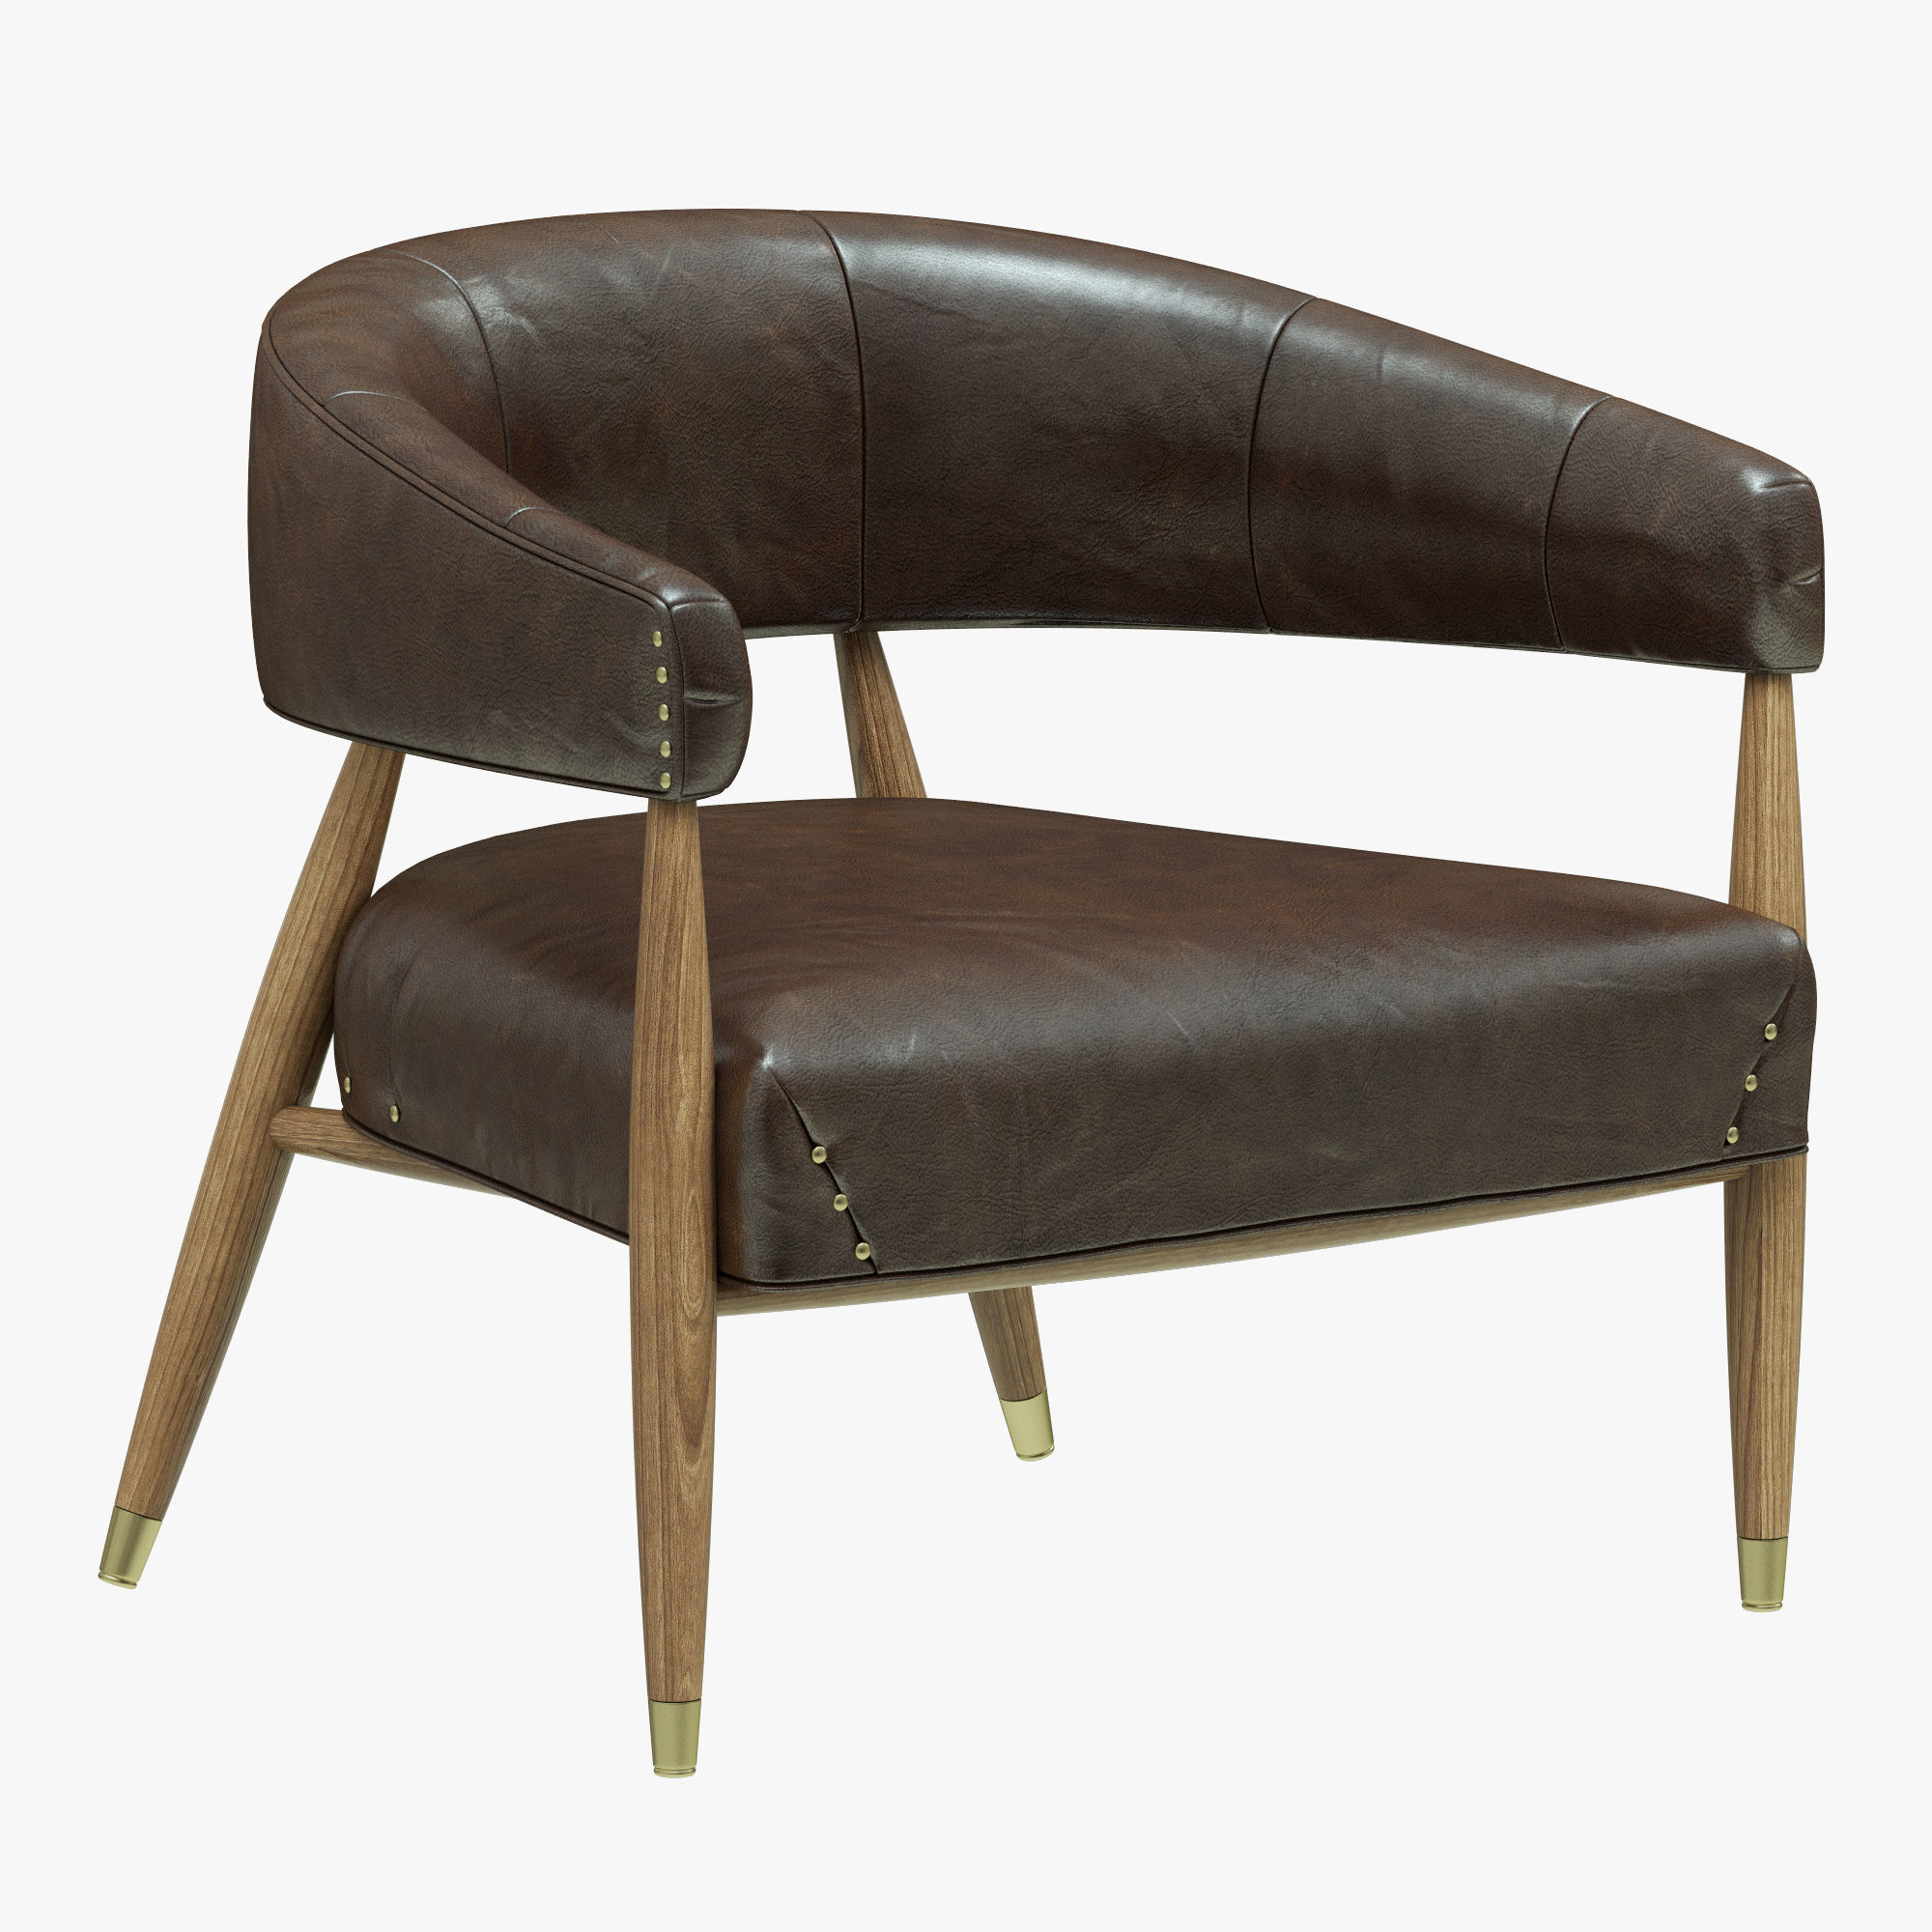 Restoration Hardware Leather Chairs Restoration Hardware Jensen Chair 3d Model